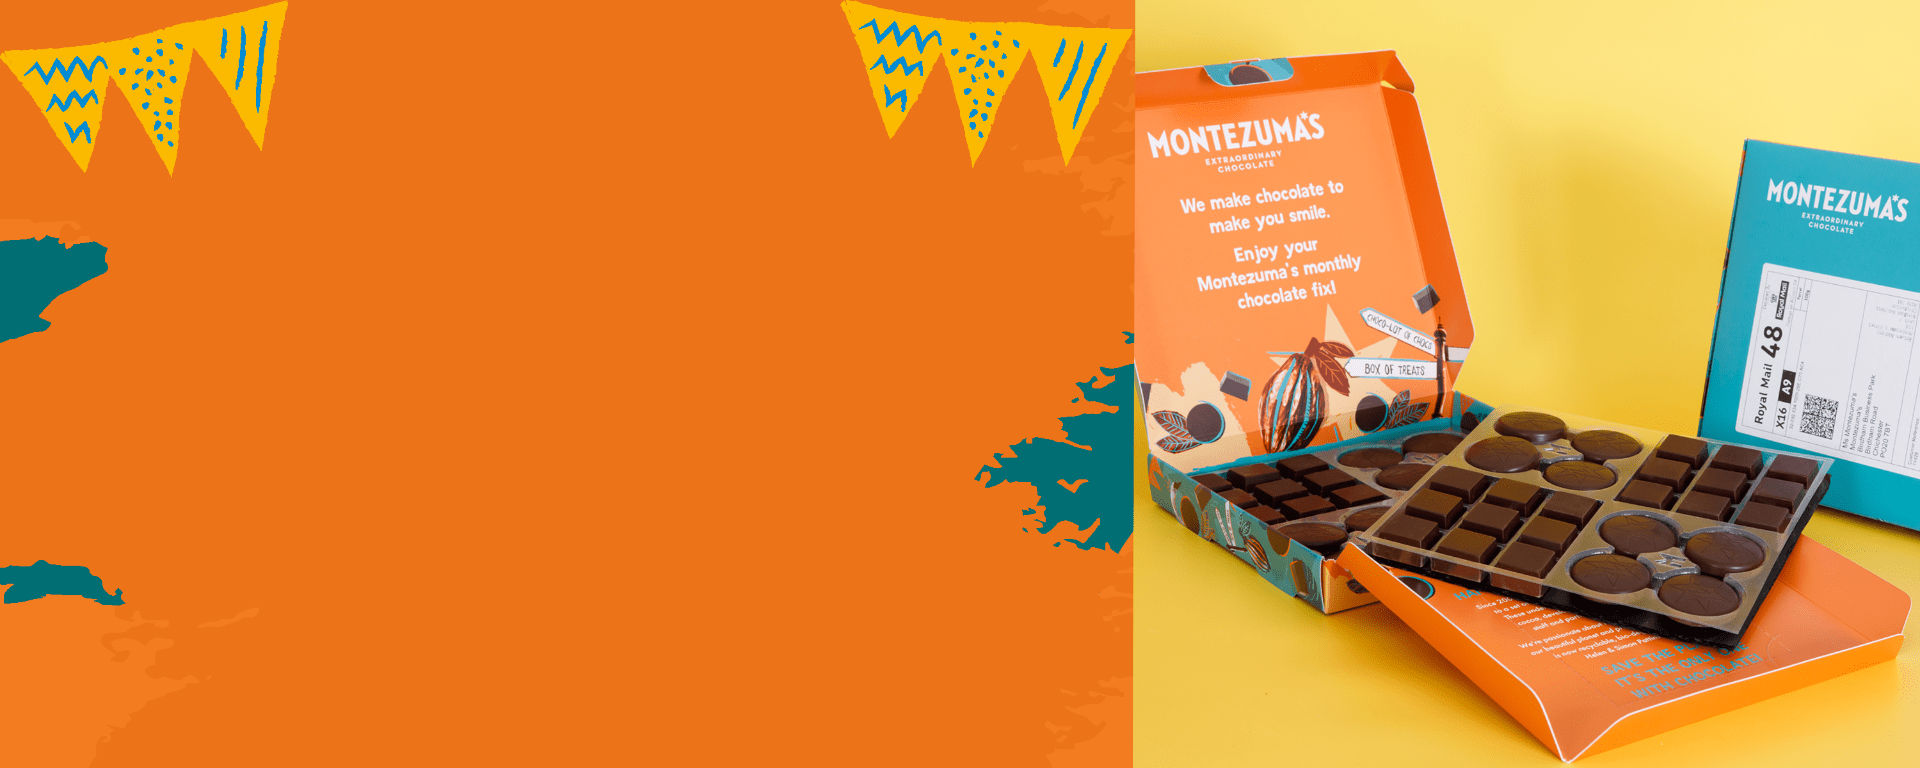 New Chocolate Subscription Boxes